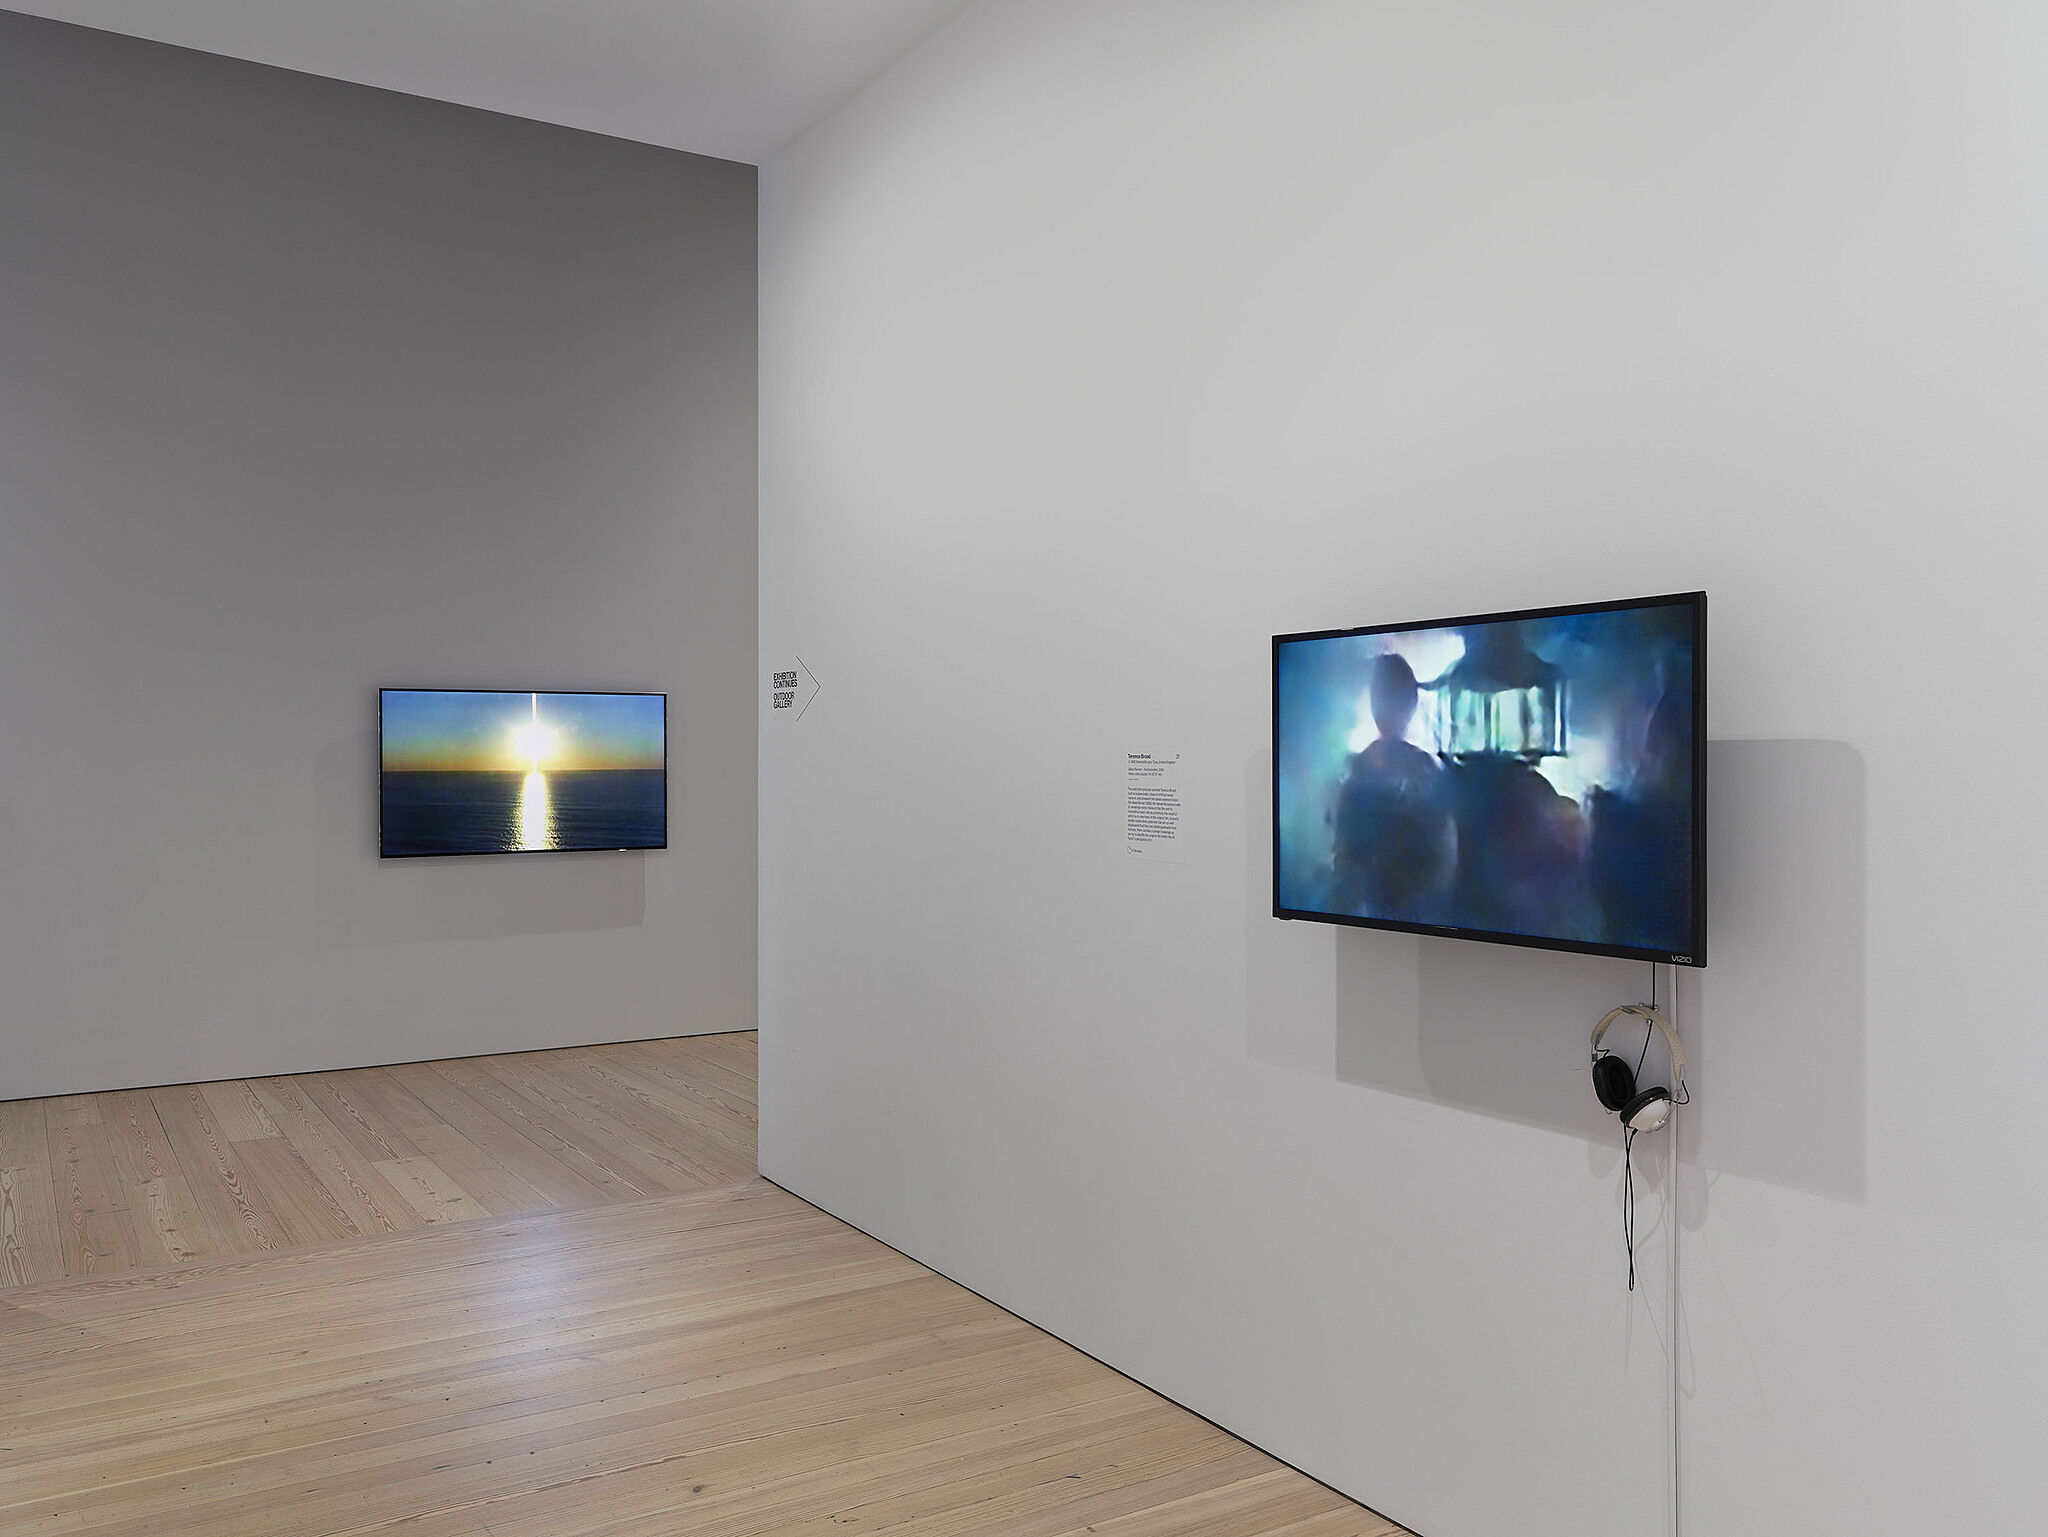 Two flat-screen televisions show video art in a gallery with white walls.